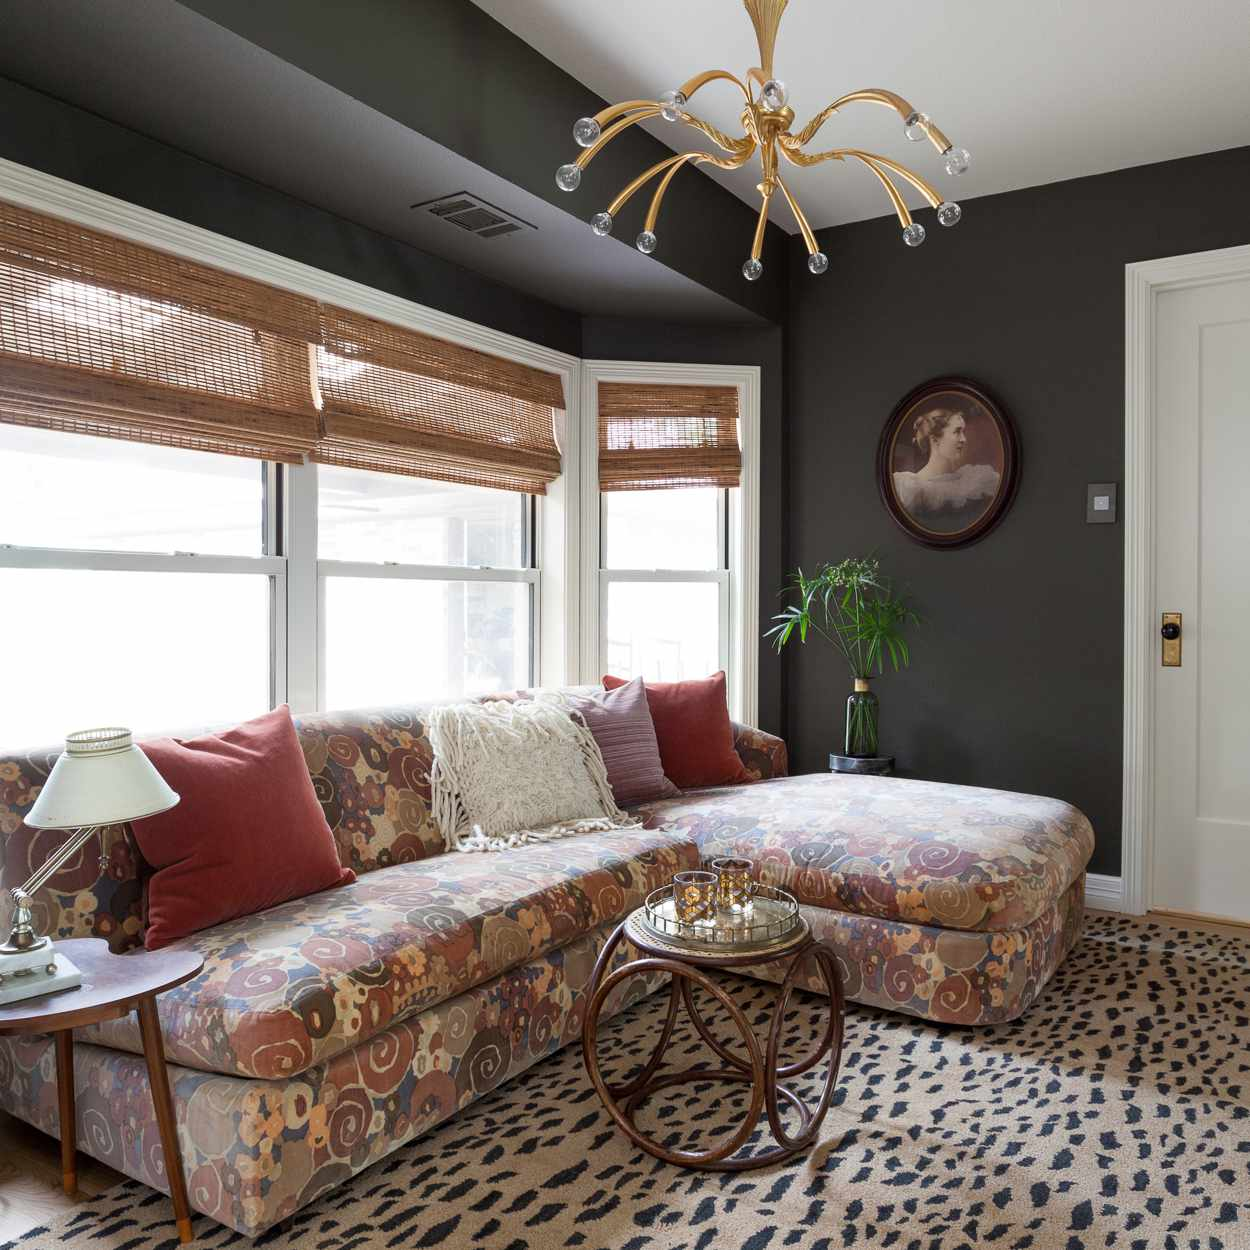 Eclectic living room features dark walls, couch and area rug in contrasting patterns